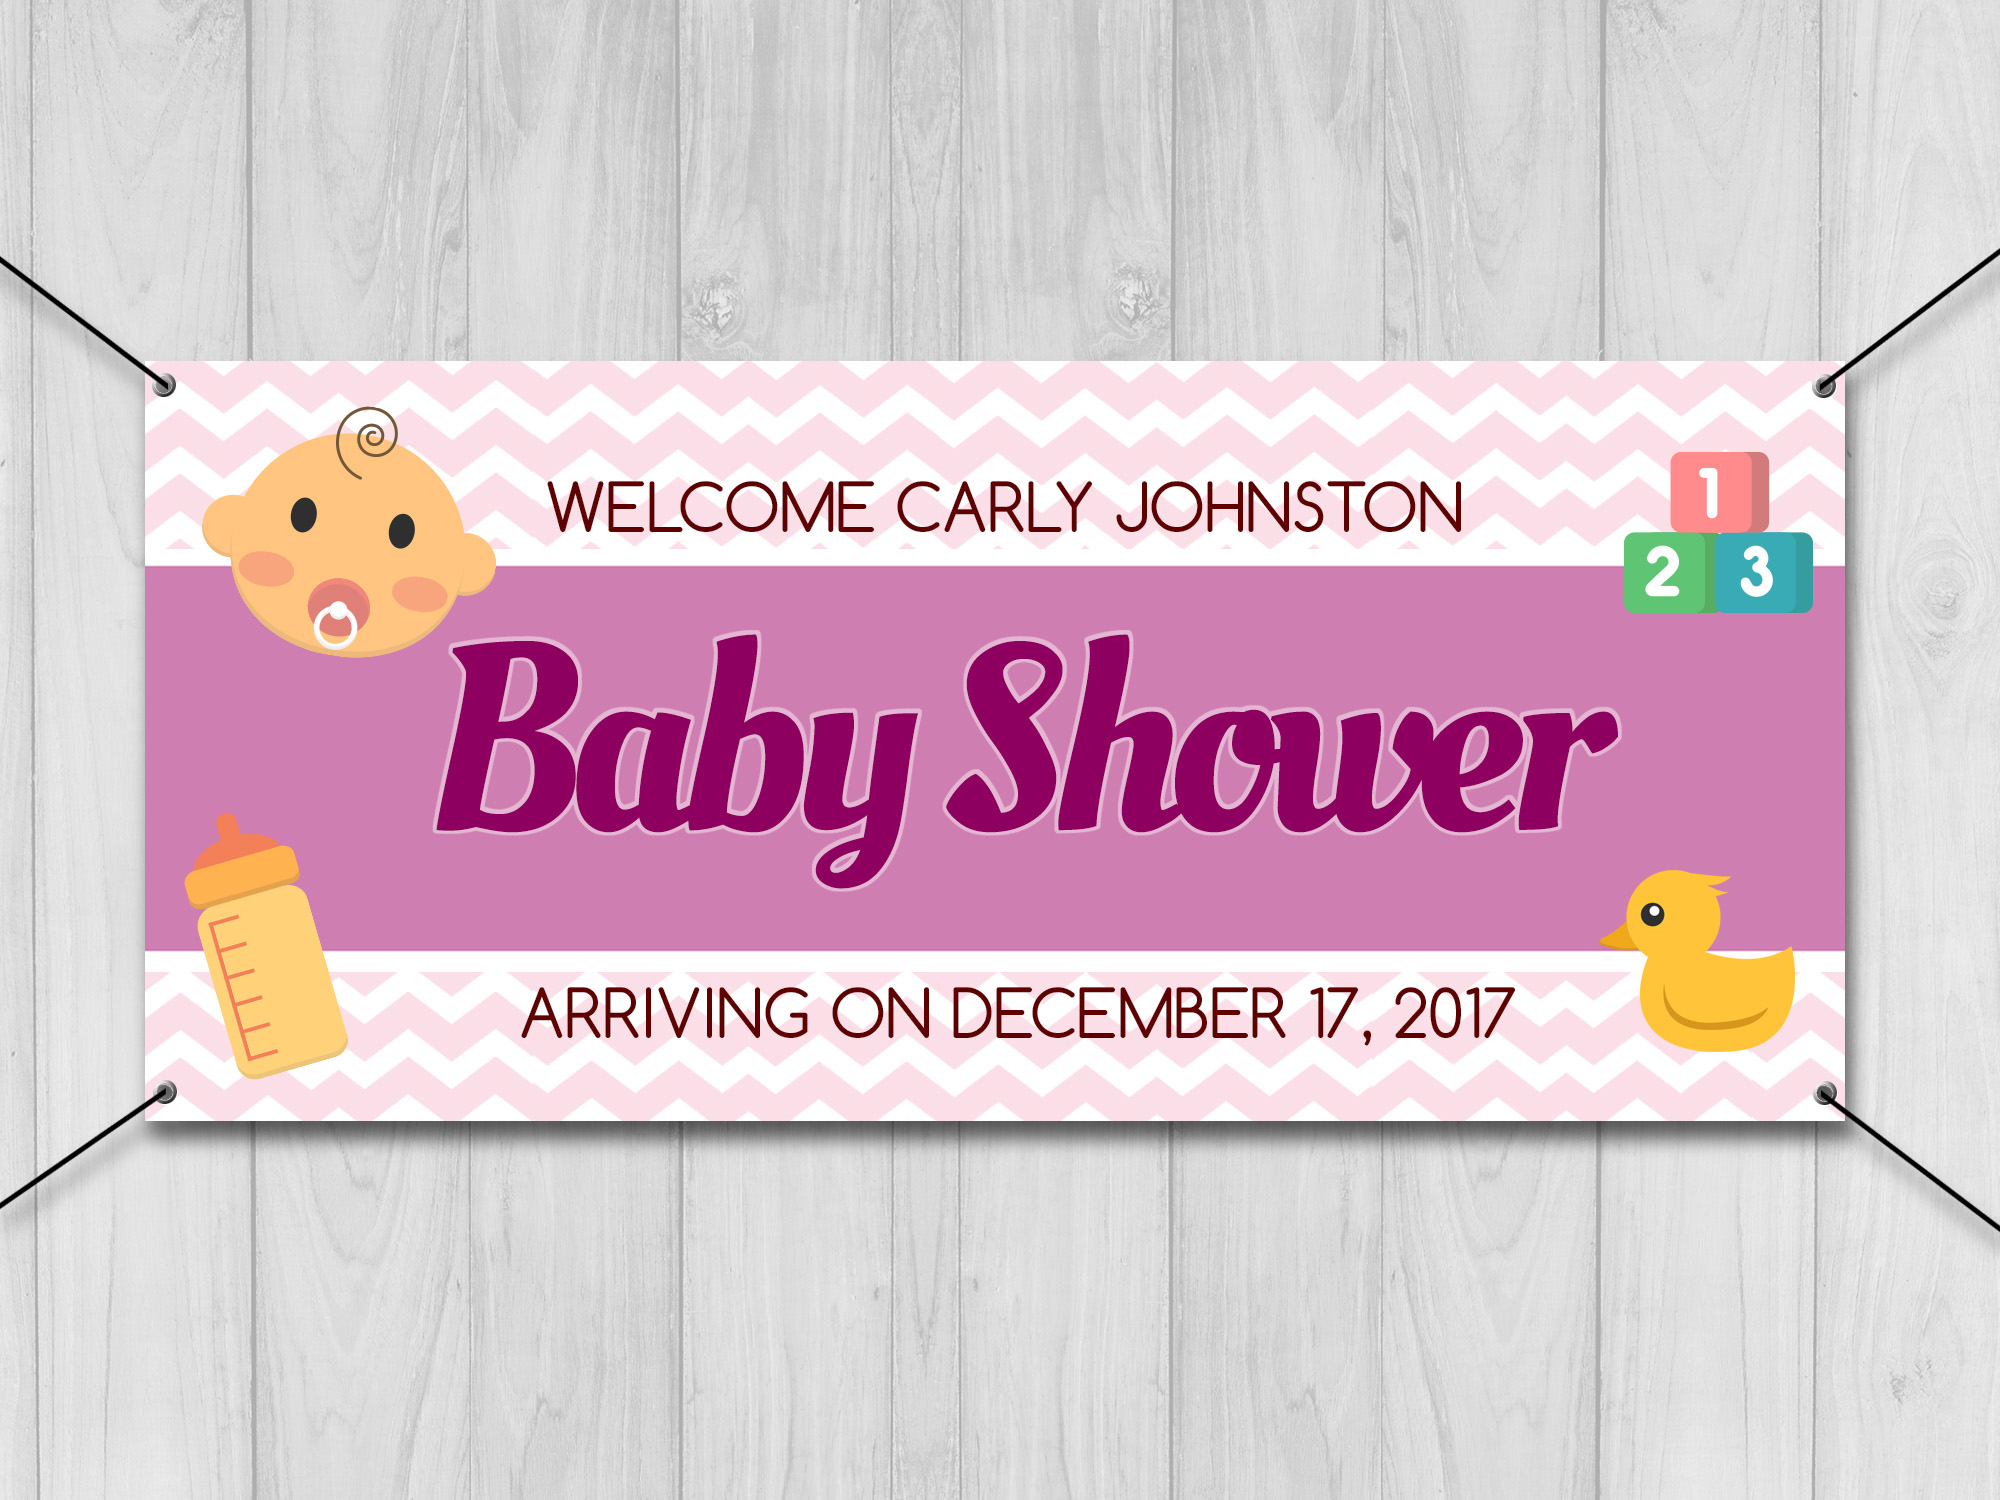 https://www.abcprintroom.com/images/products_gallery_images/pic_banner_baby68.jpg